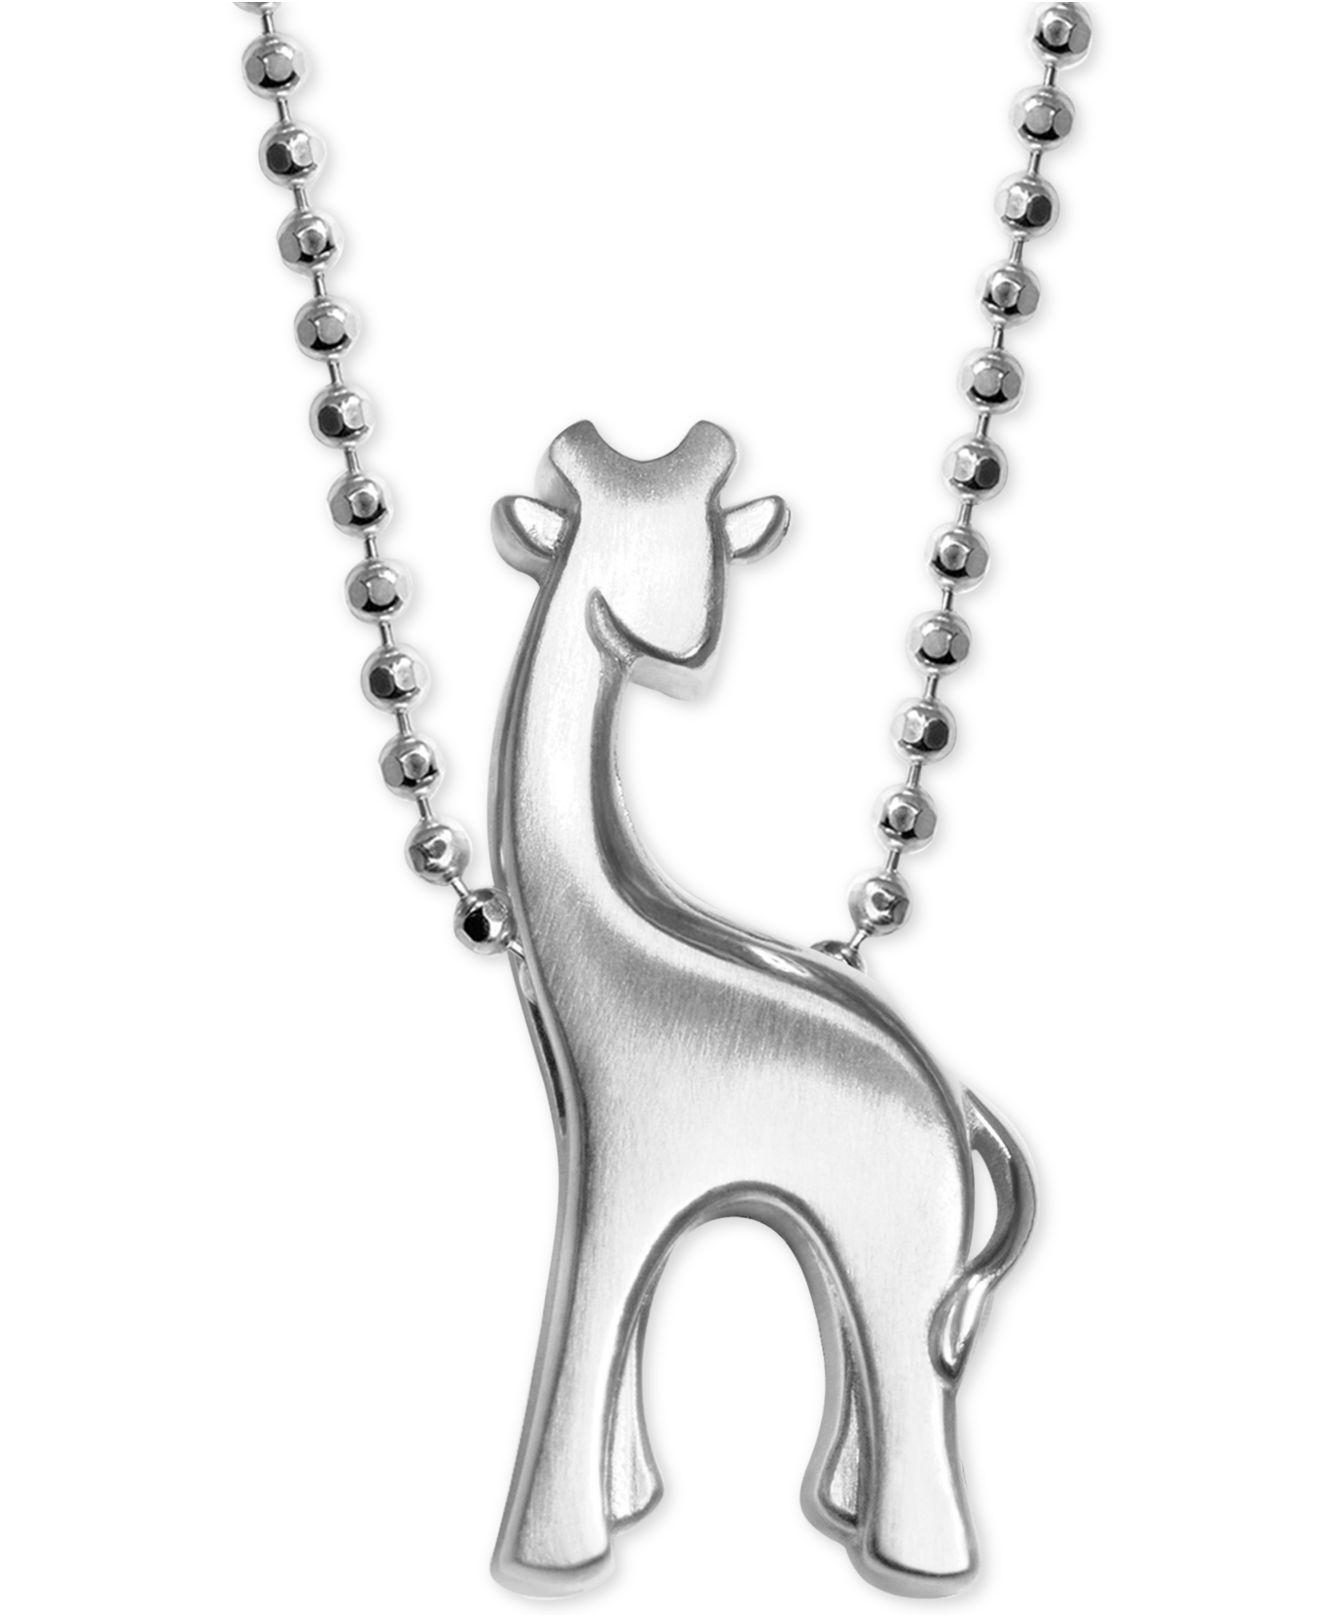 child and gold tdw necklace today overstock product giraffe shipping mom sterling yellow silver pendant diamond watches free jewelry